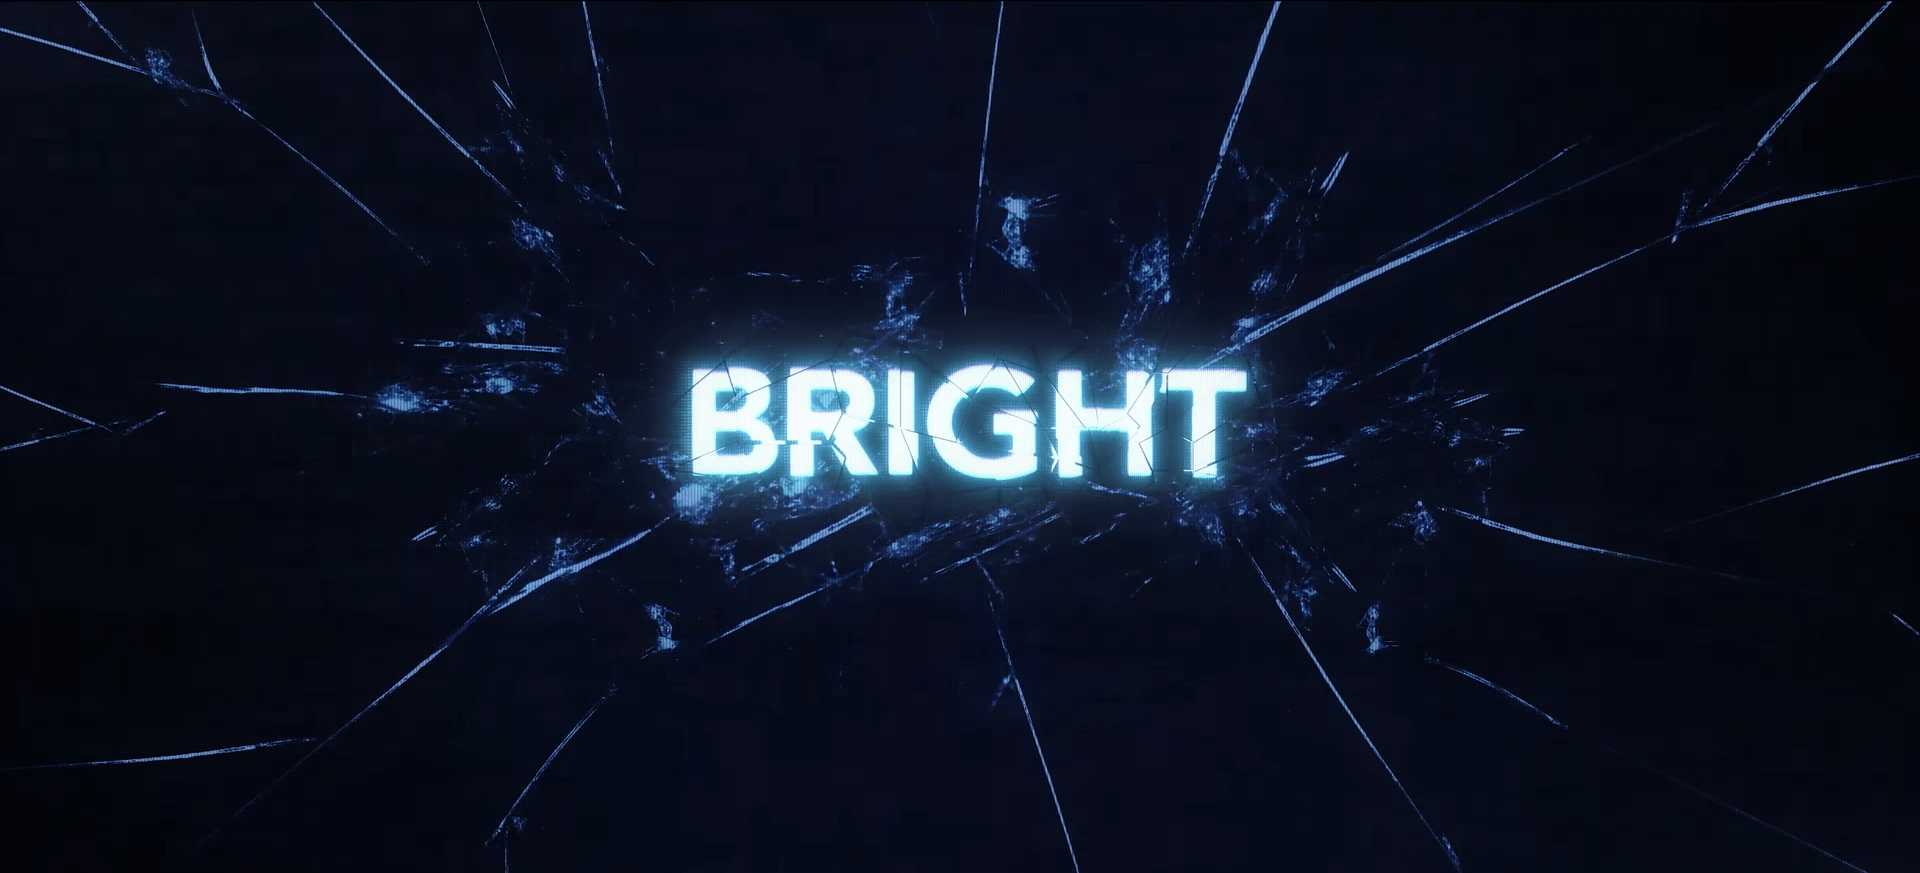 The future is bright From the Black Mirror trailer